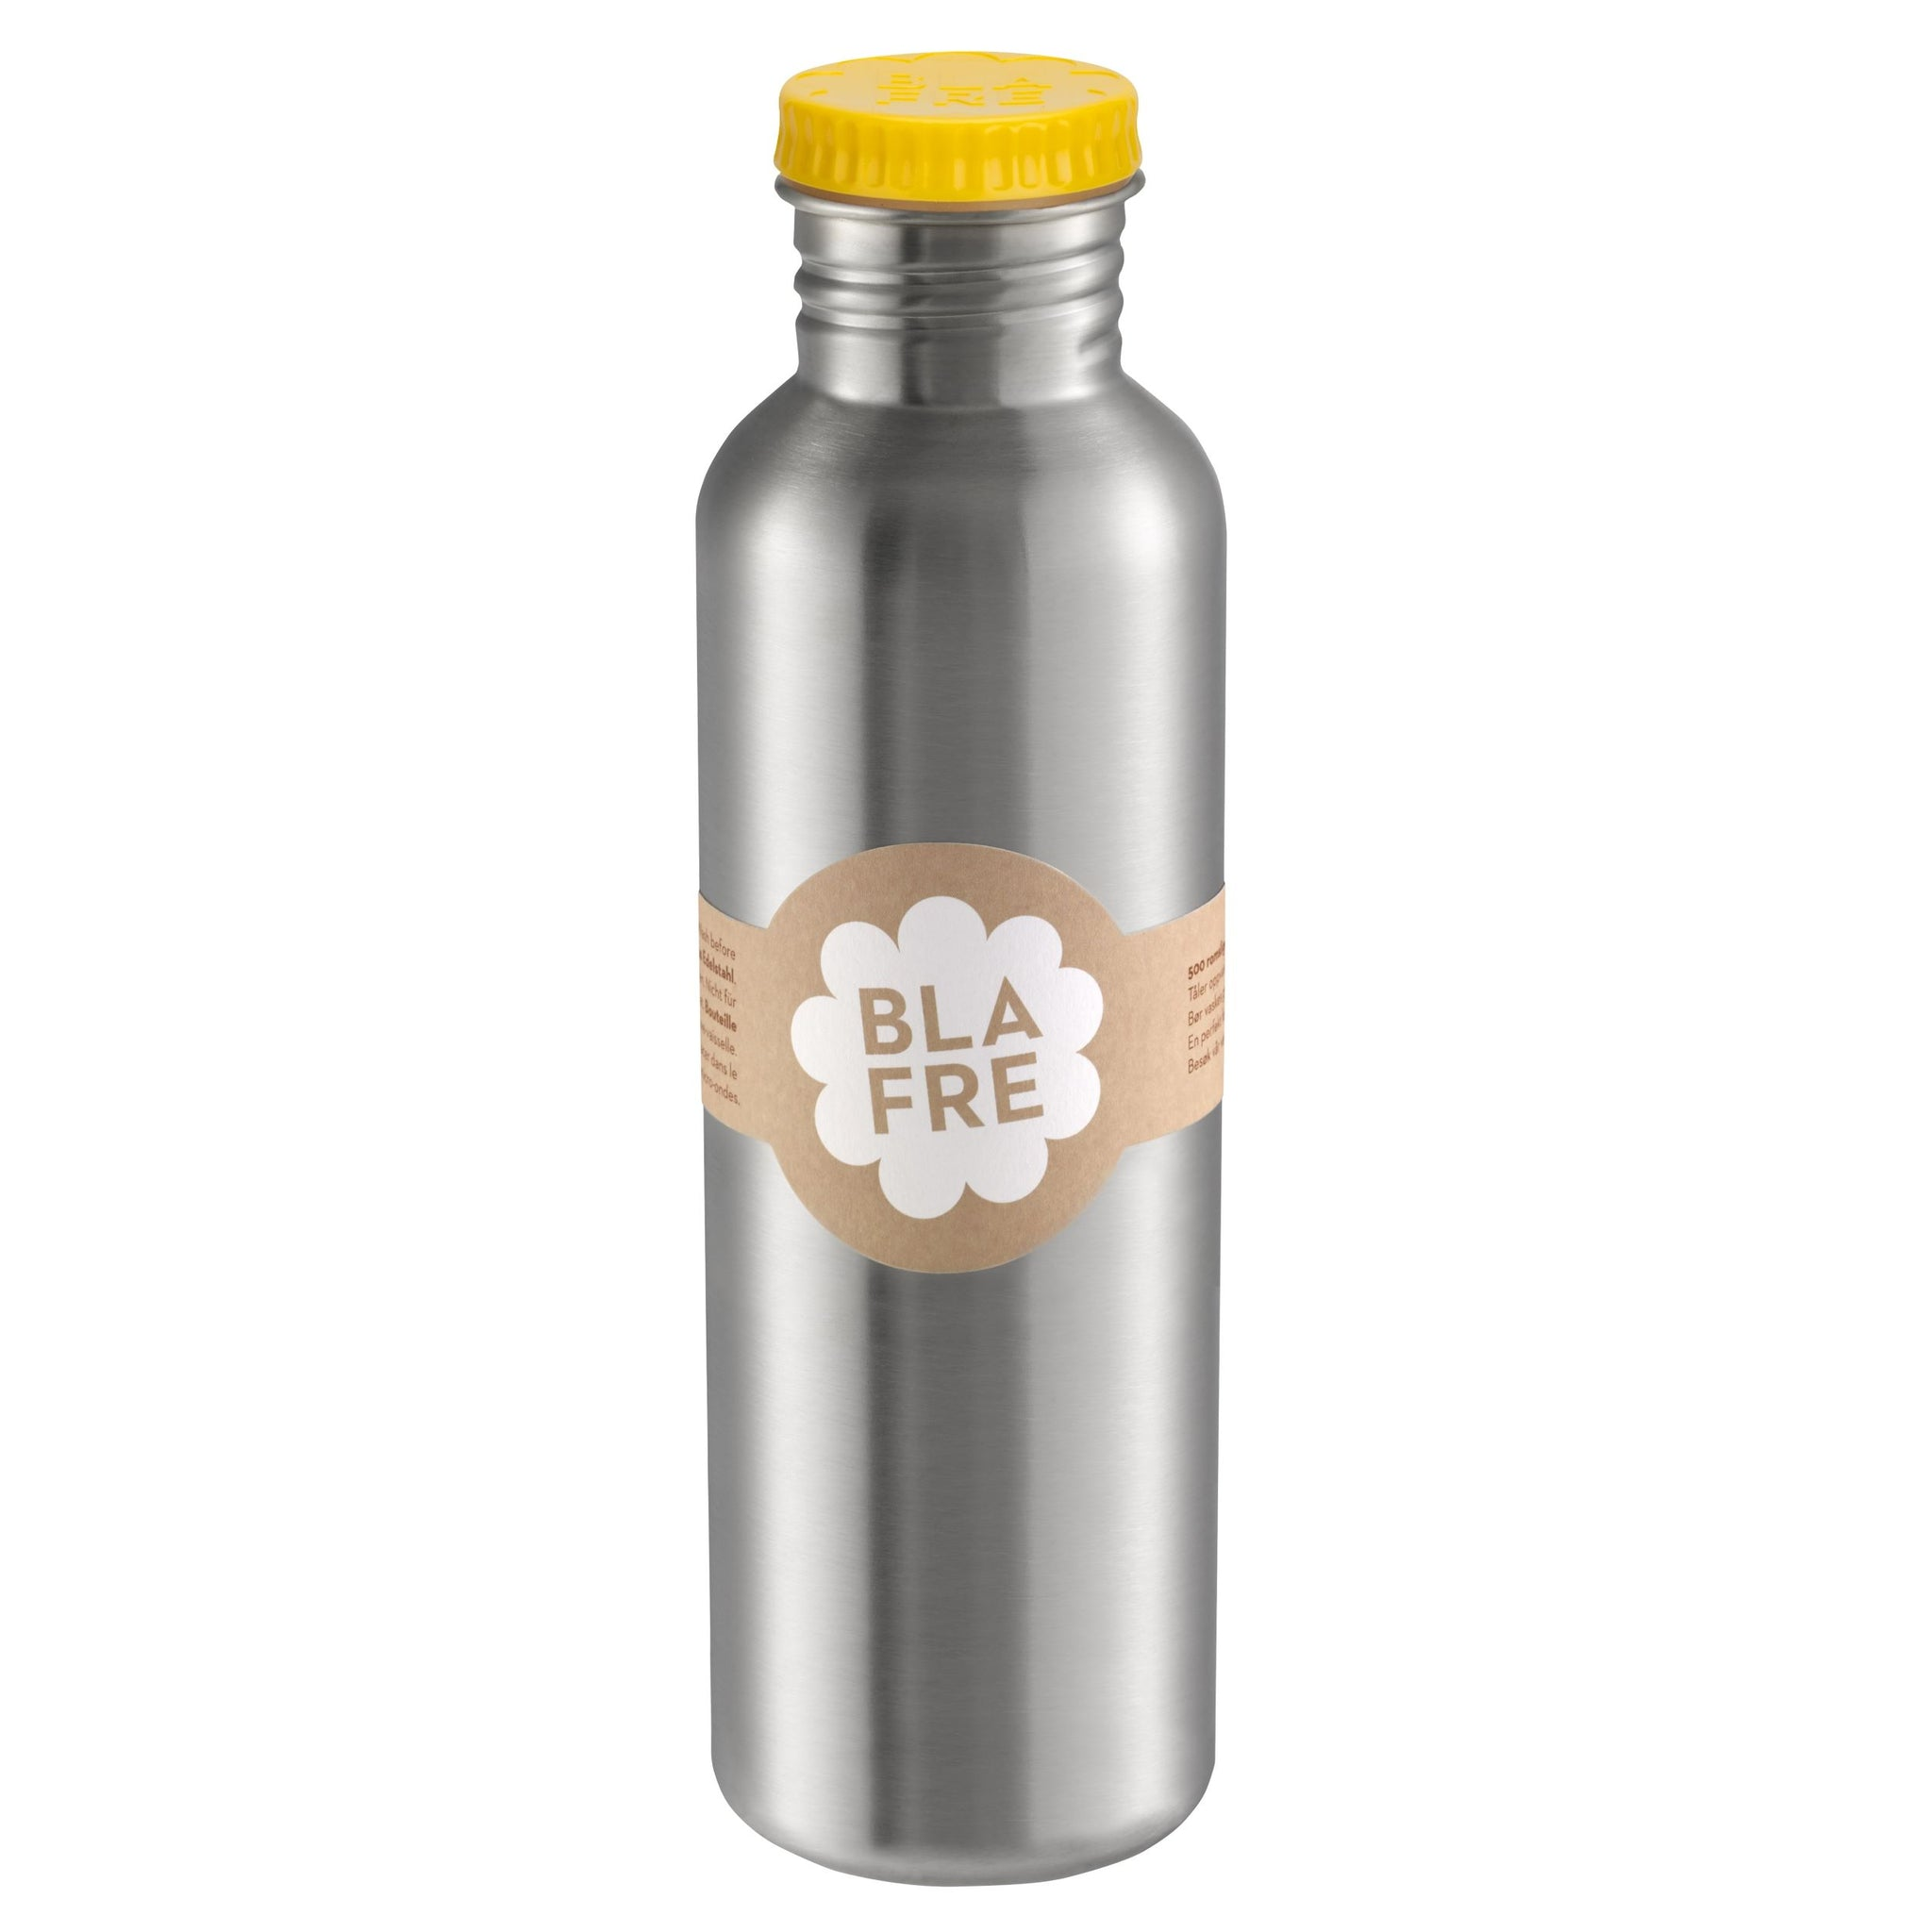 750ml Steel Water Drinking Bottle with Yellow Lid by Blafre - A Fly Went By